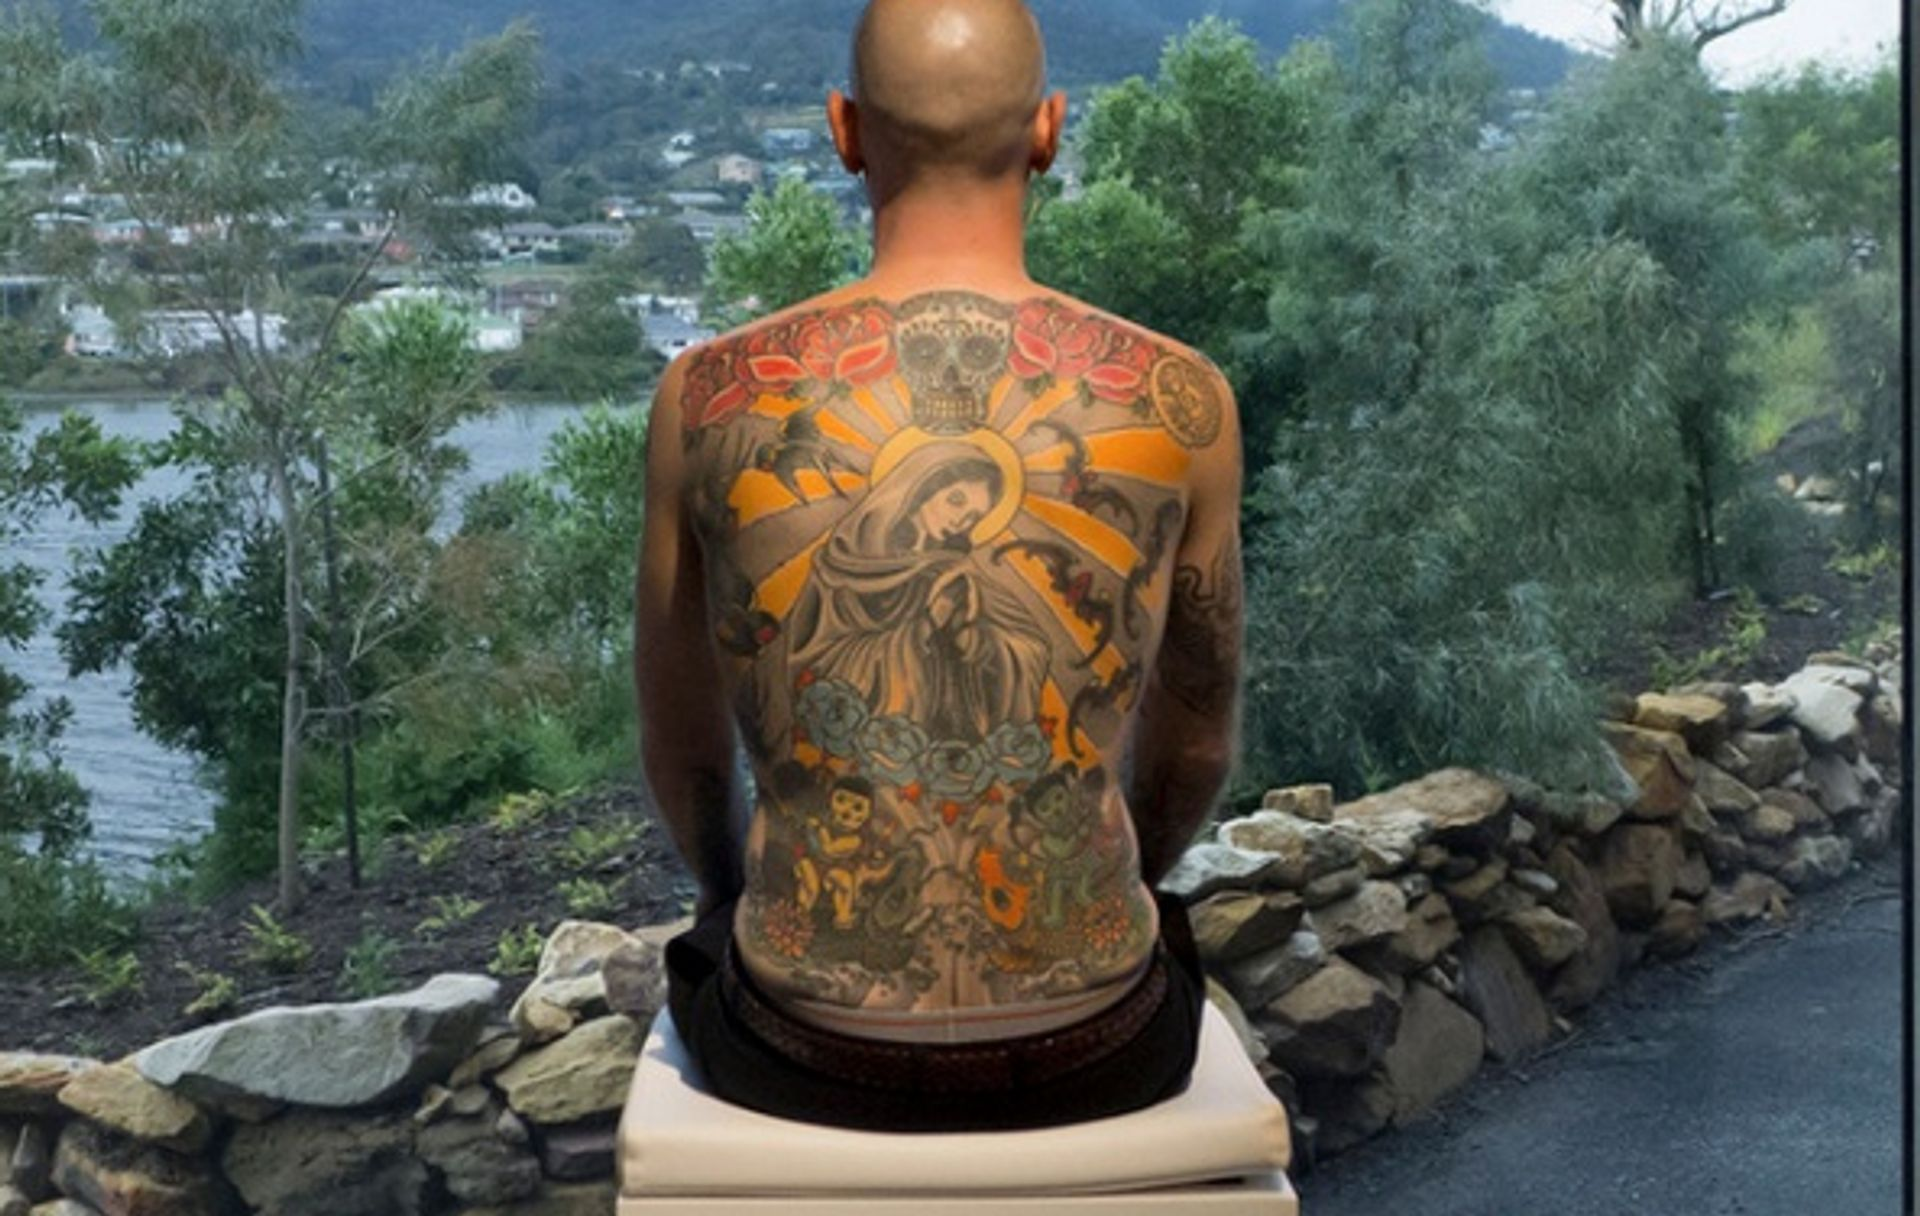 The Belgian artist Wim Delvoye has covered Tim Steiner's back with a tattoo of the Madonna crowned in a halo, topped with a Mexican skull; the piece is entitled Tim (2006-08) © Wim Delvoye